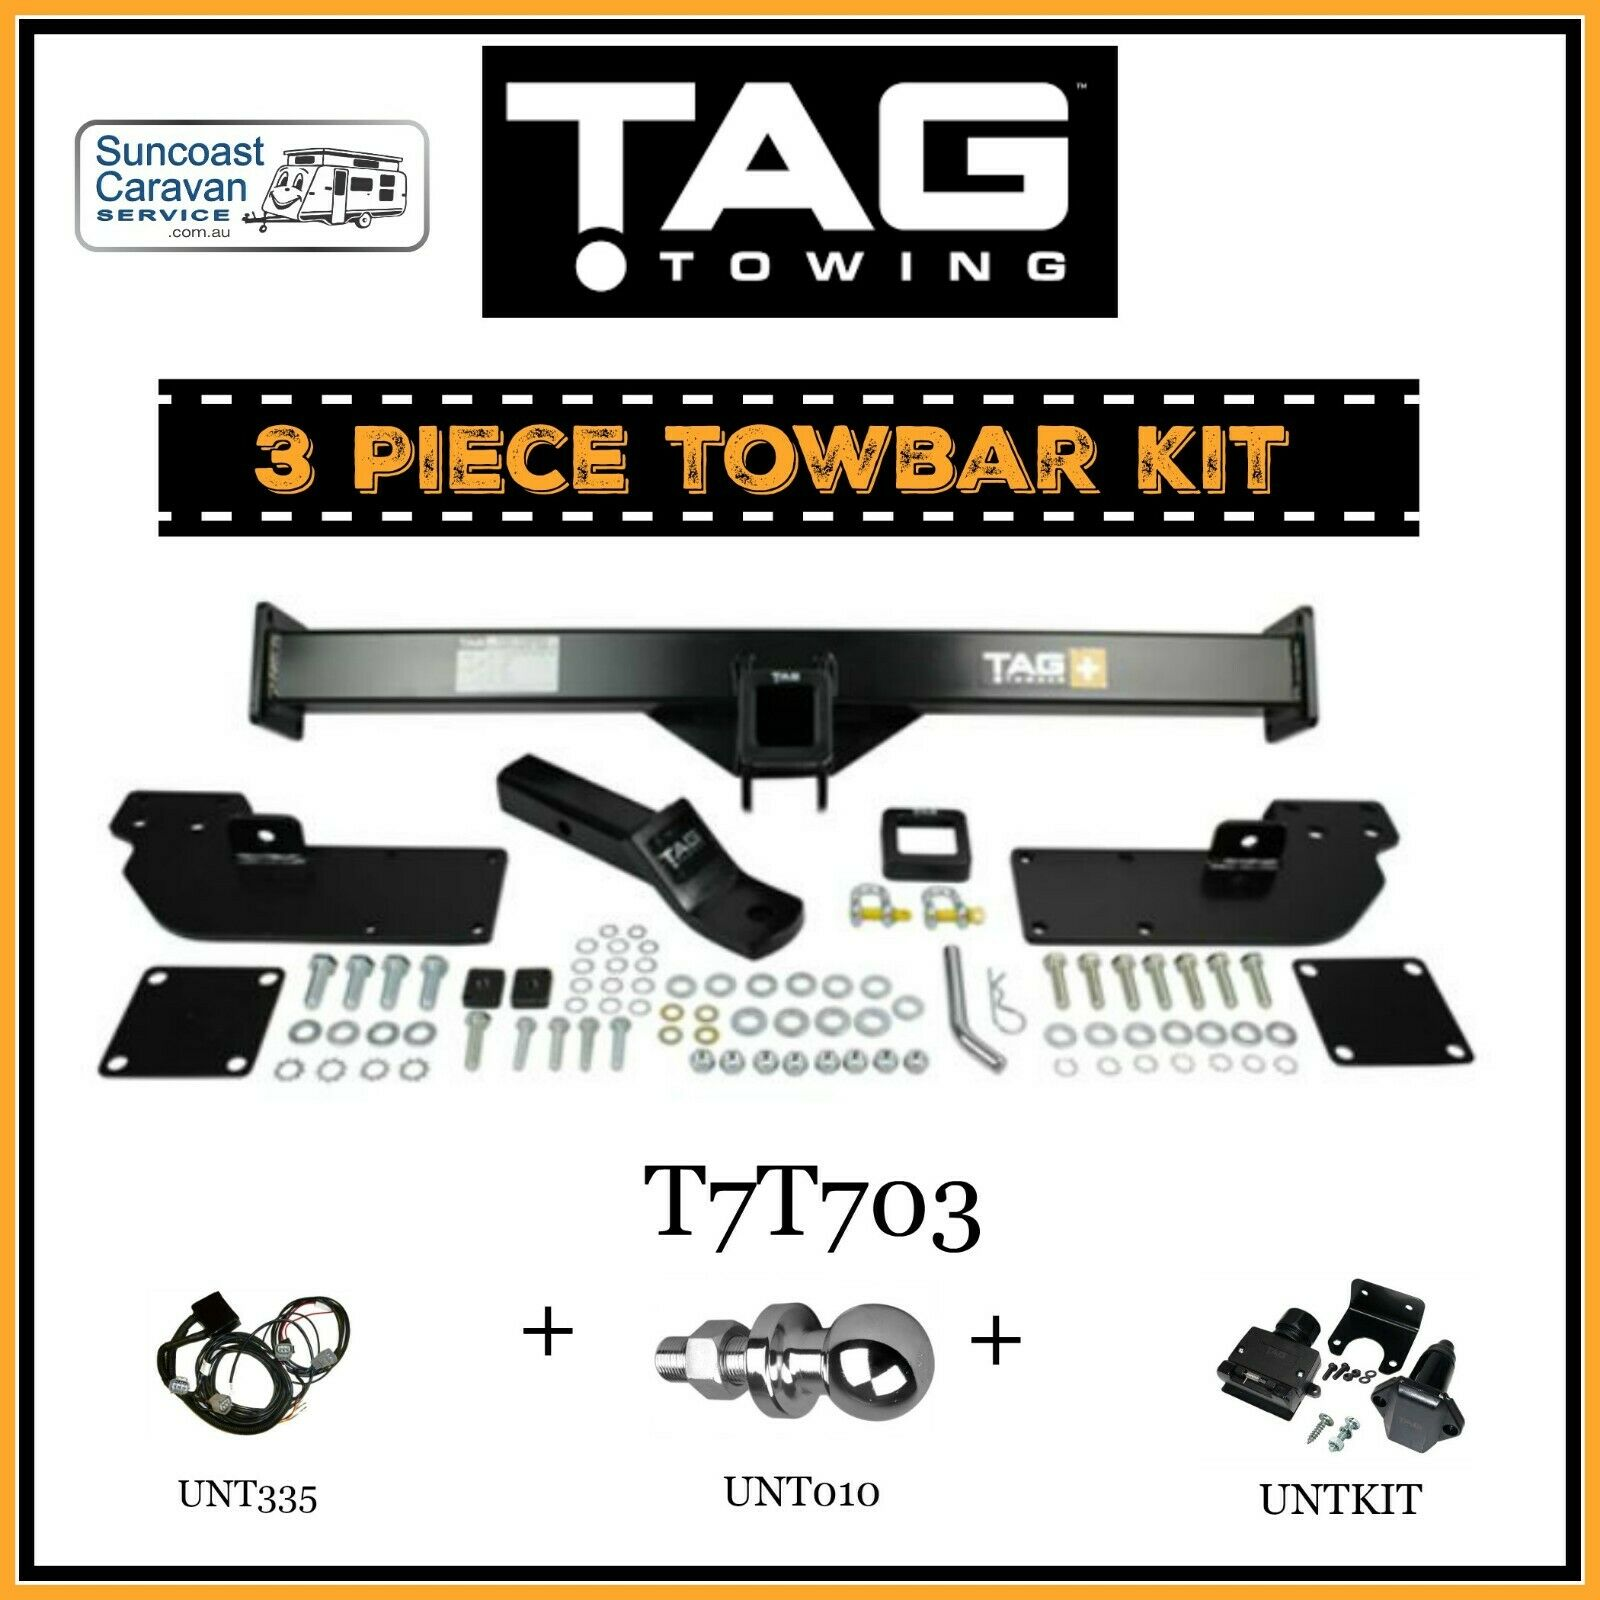 TAG 3Pce Towbar Kit-Bar Wiring Harness Towball Plug Kit ... Wiring Harness Kit For Towing on towing stone guards, dodge ignition wire harness, car towing harness, towing light harness, towing wiring connectors, towing accessories, towing cable, ford focus trailer harness,